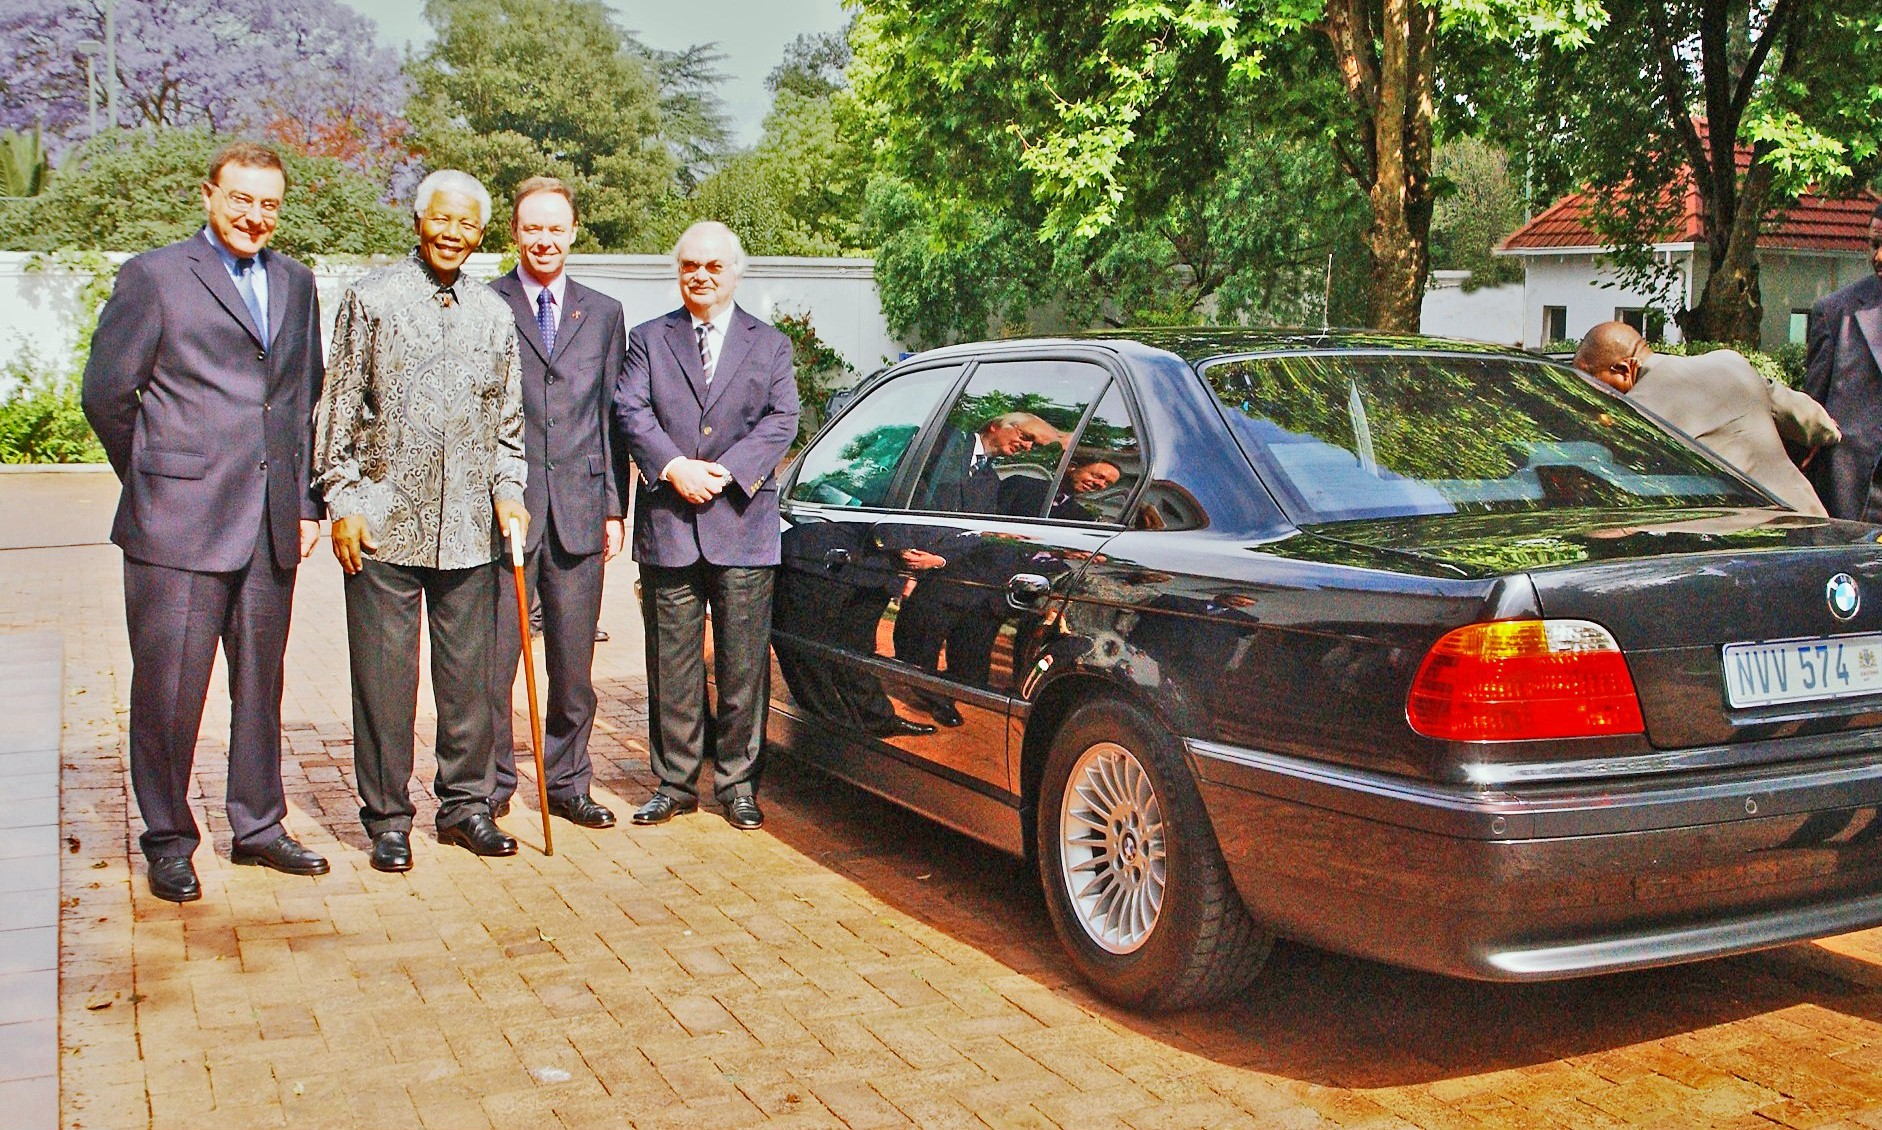 The Tricky Tale of Mandela's BMW